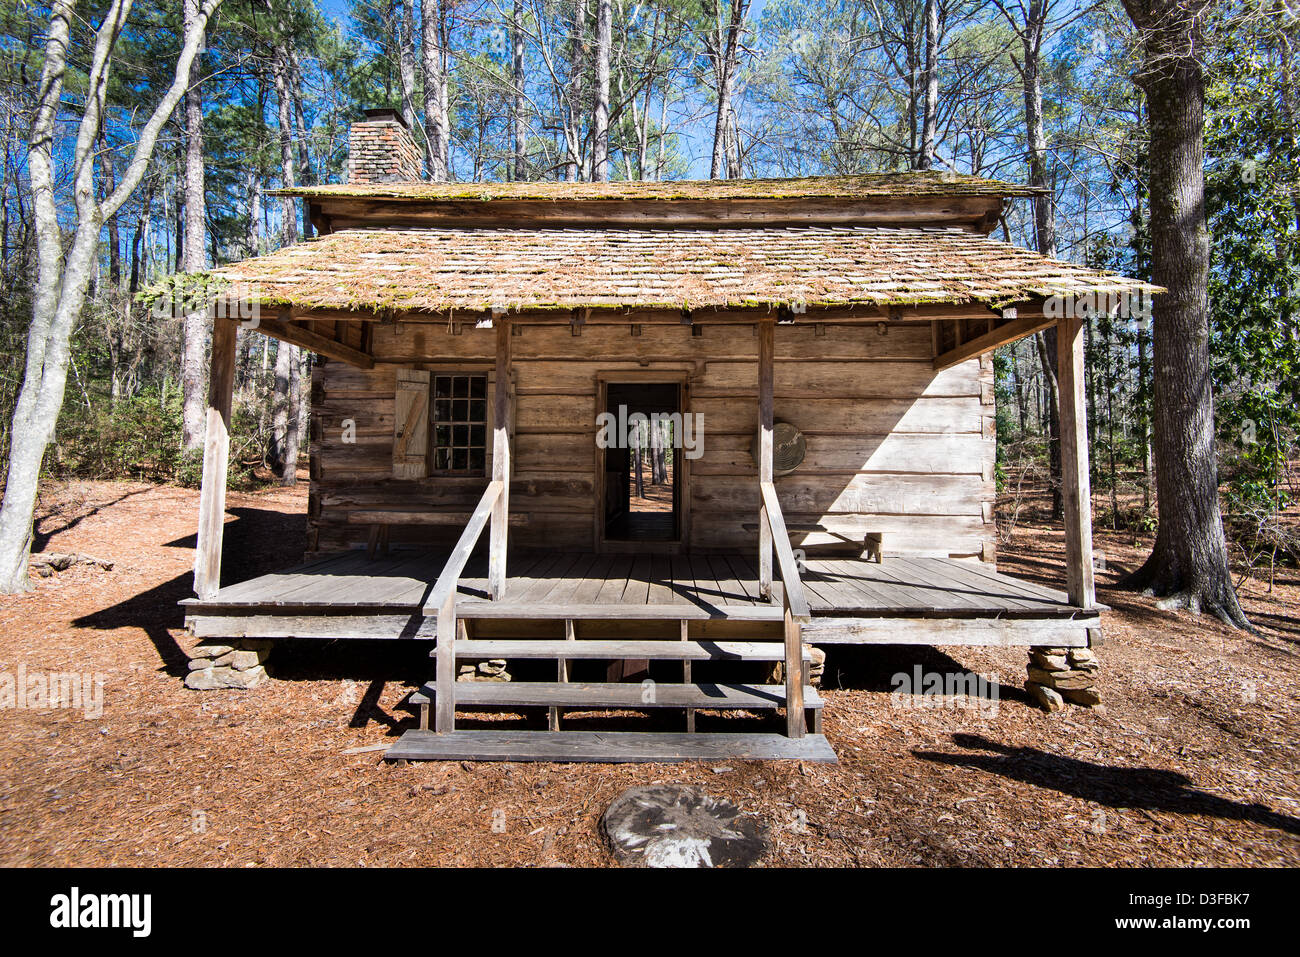 Callaway gardens a great family getaway the culture mom for Hand hewn log cabin for sale